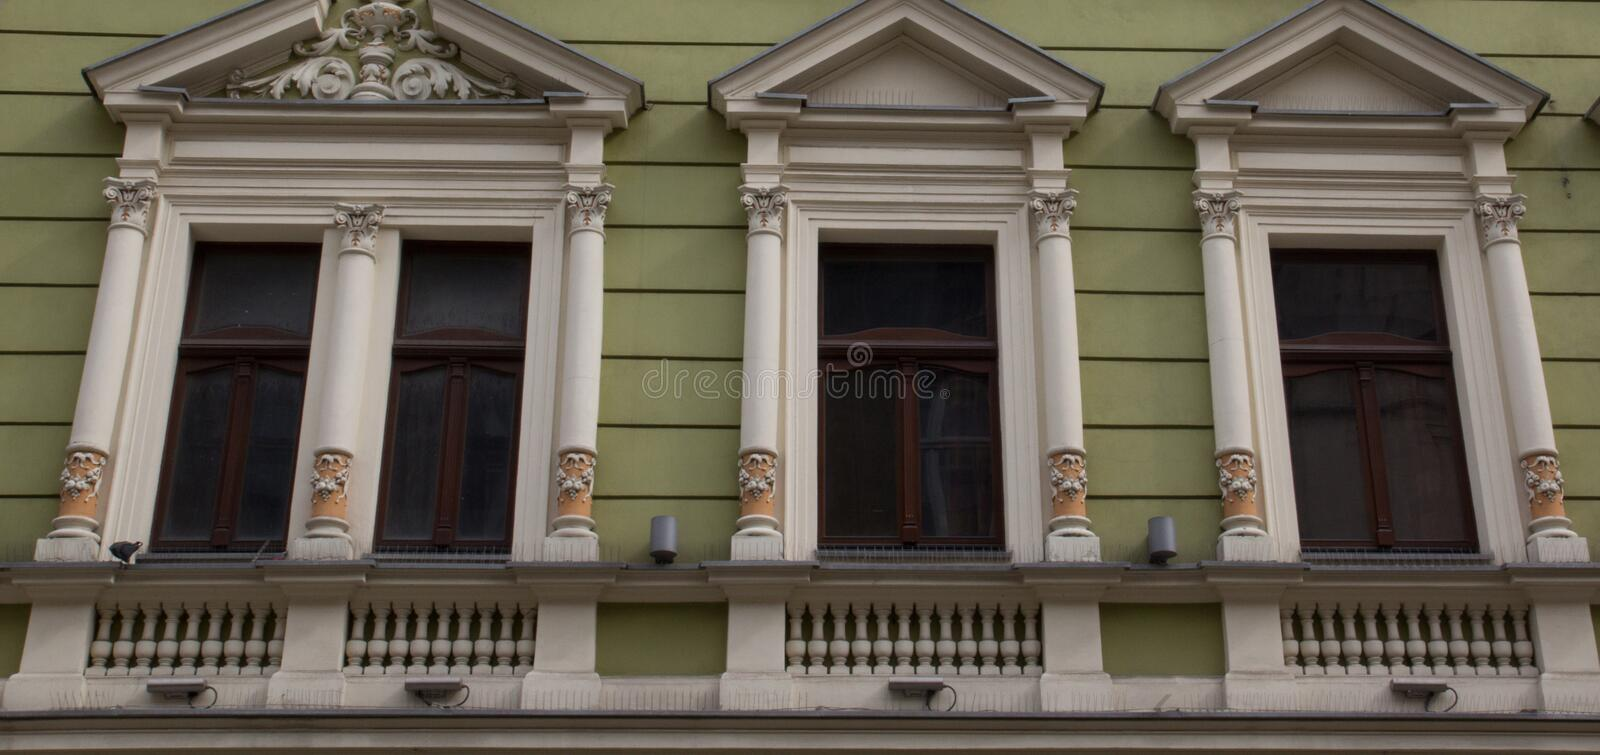 Four vintage design windows on the facade of the old house.  royalty free stock images